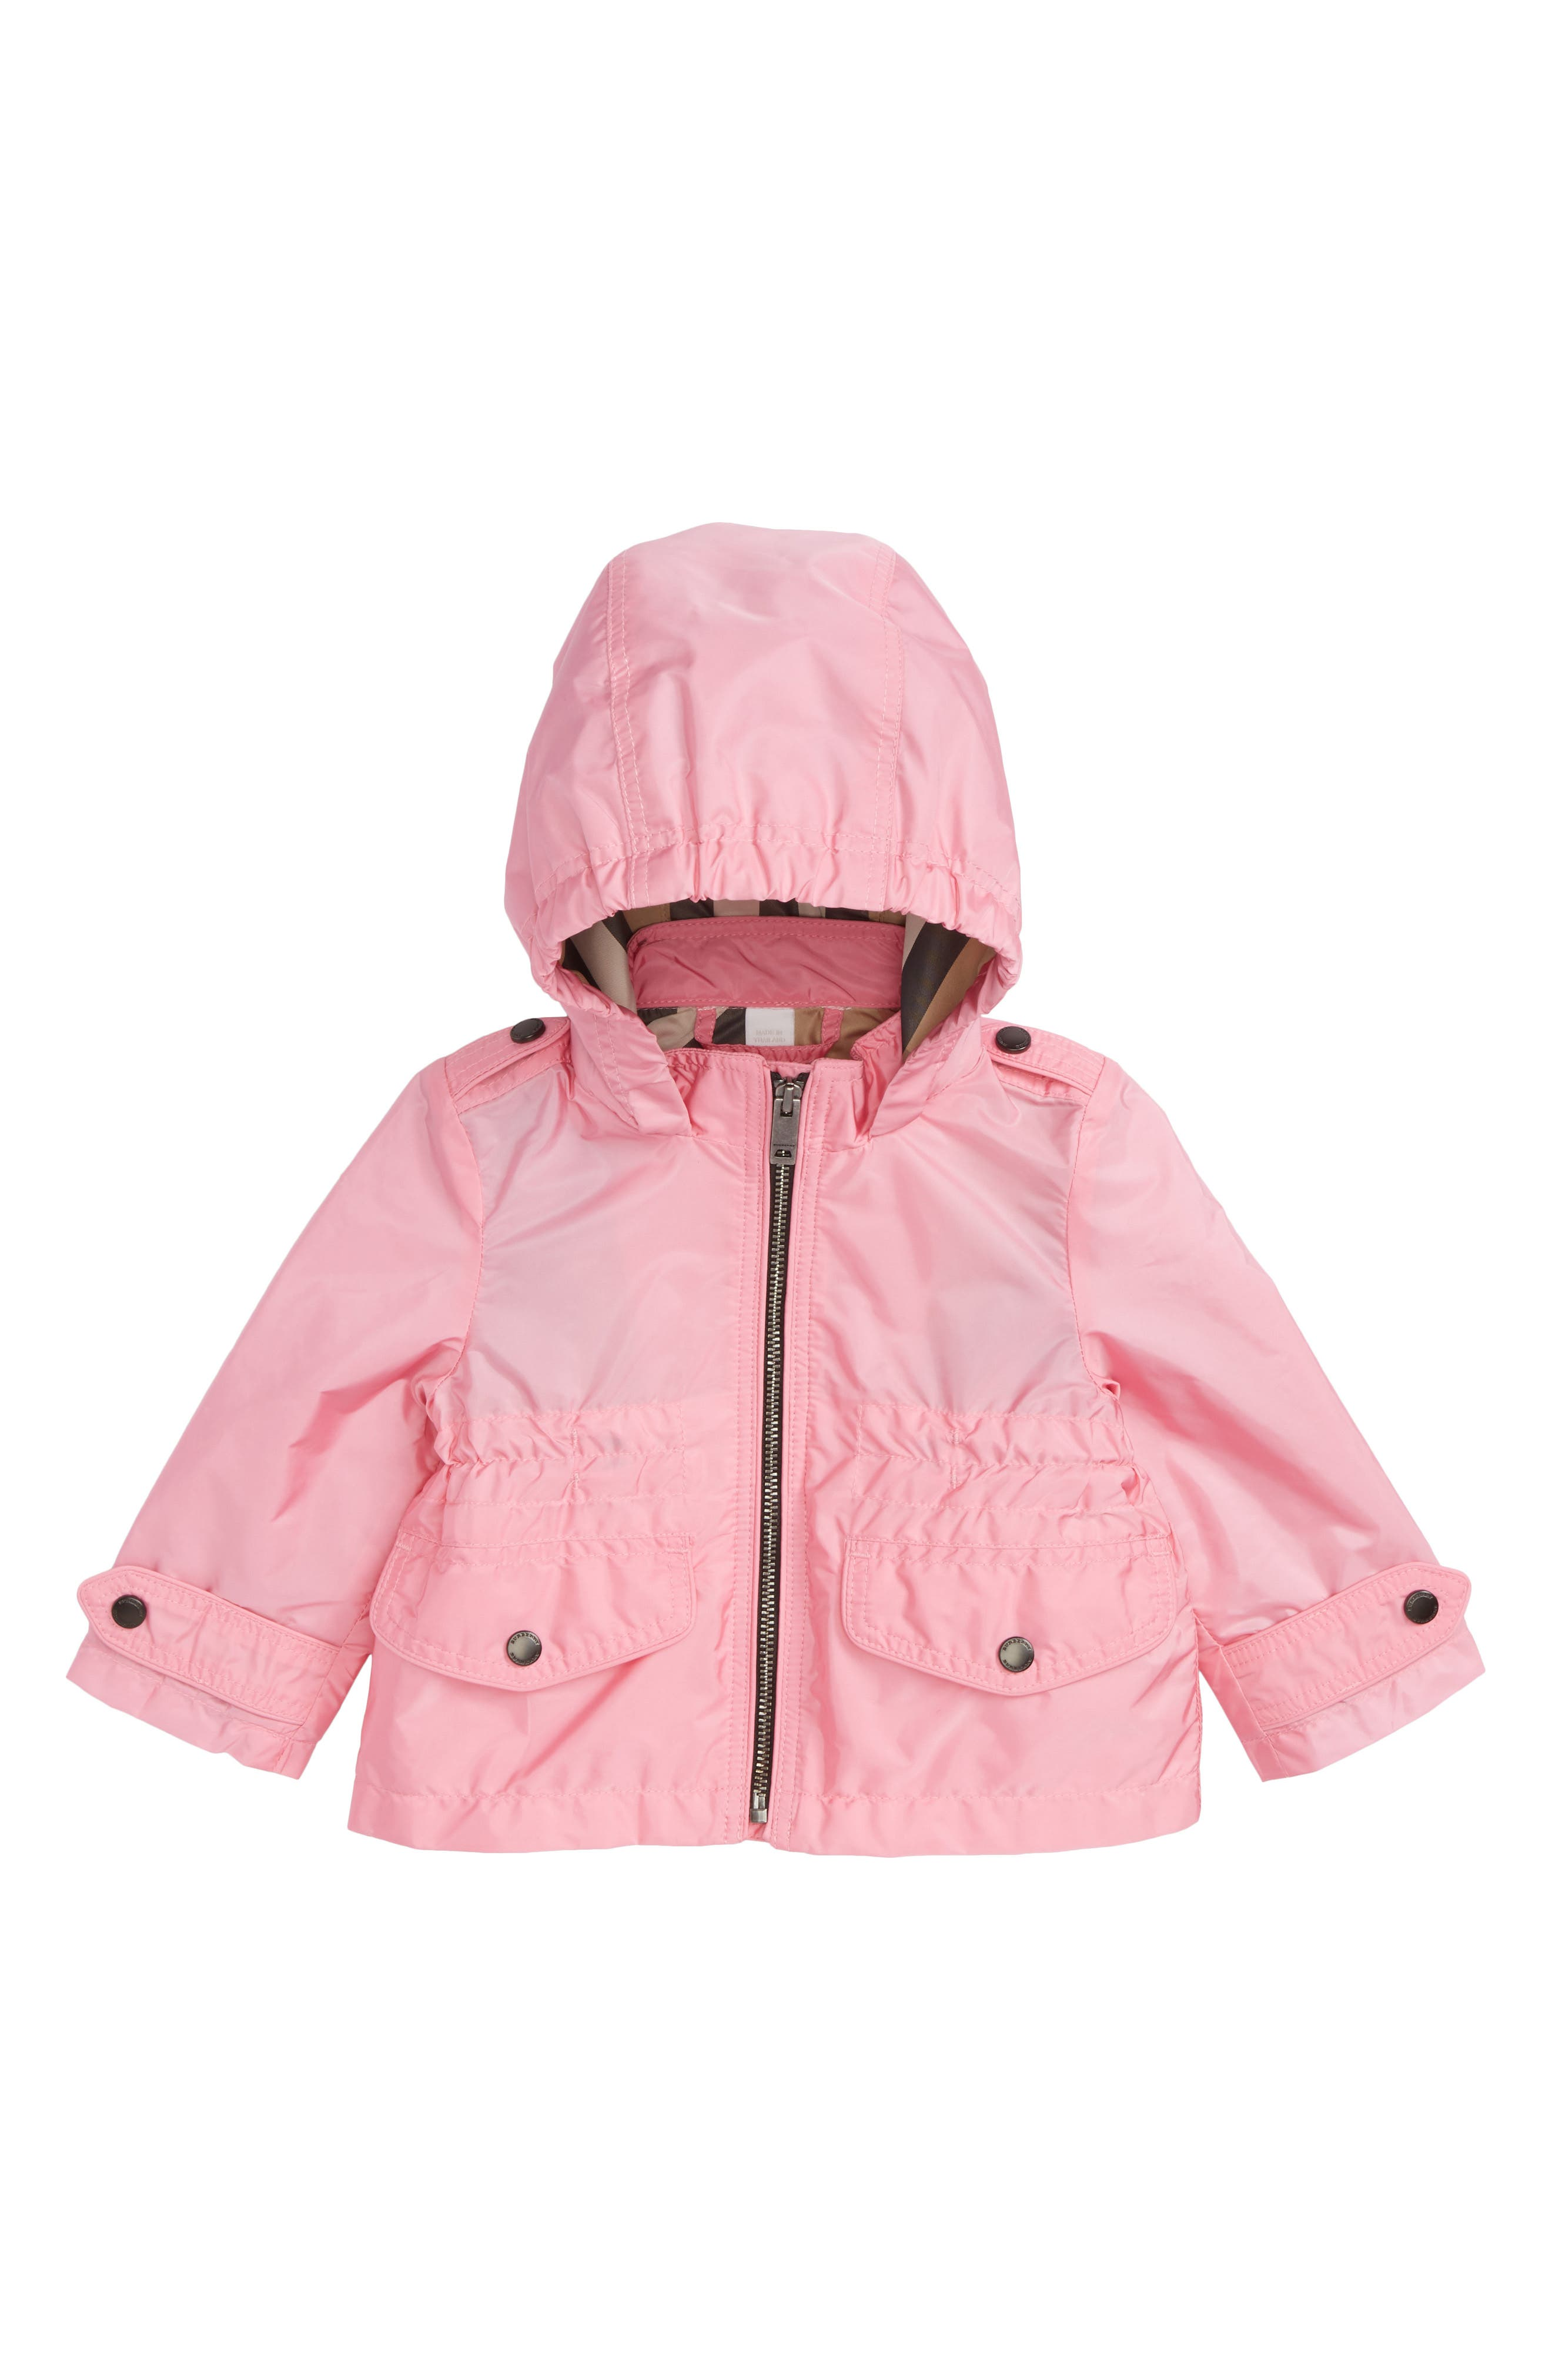 Mini Halle Hooded Packaway Rain Jacket,                         Main,                         color, Bright Coral Pink